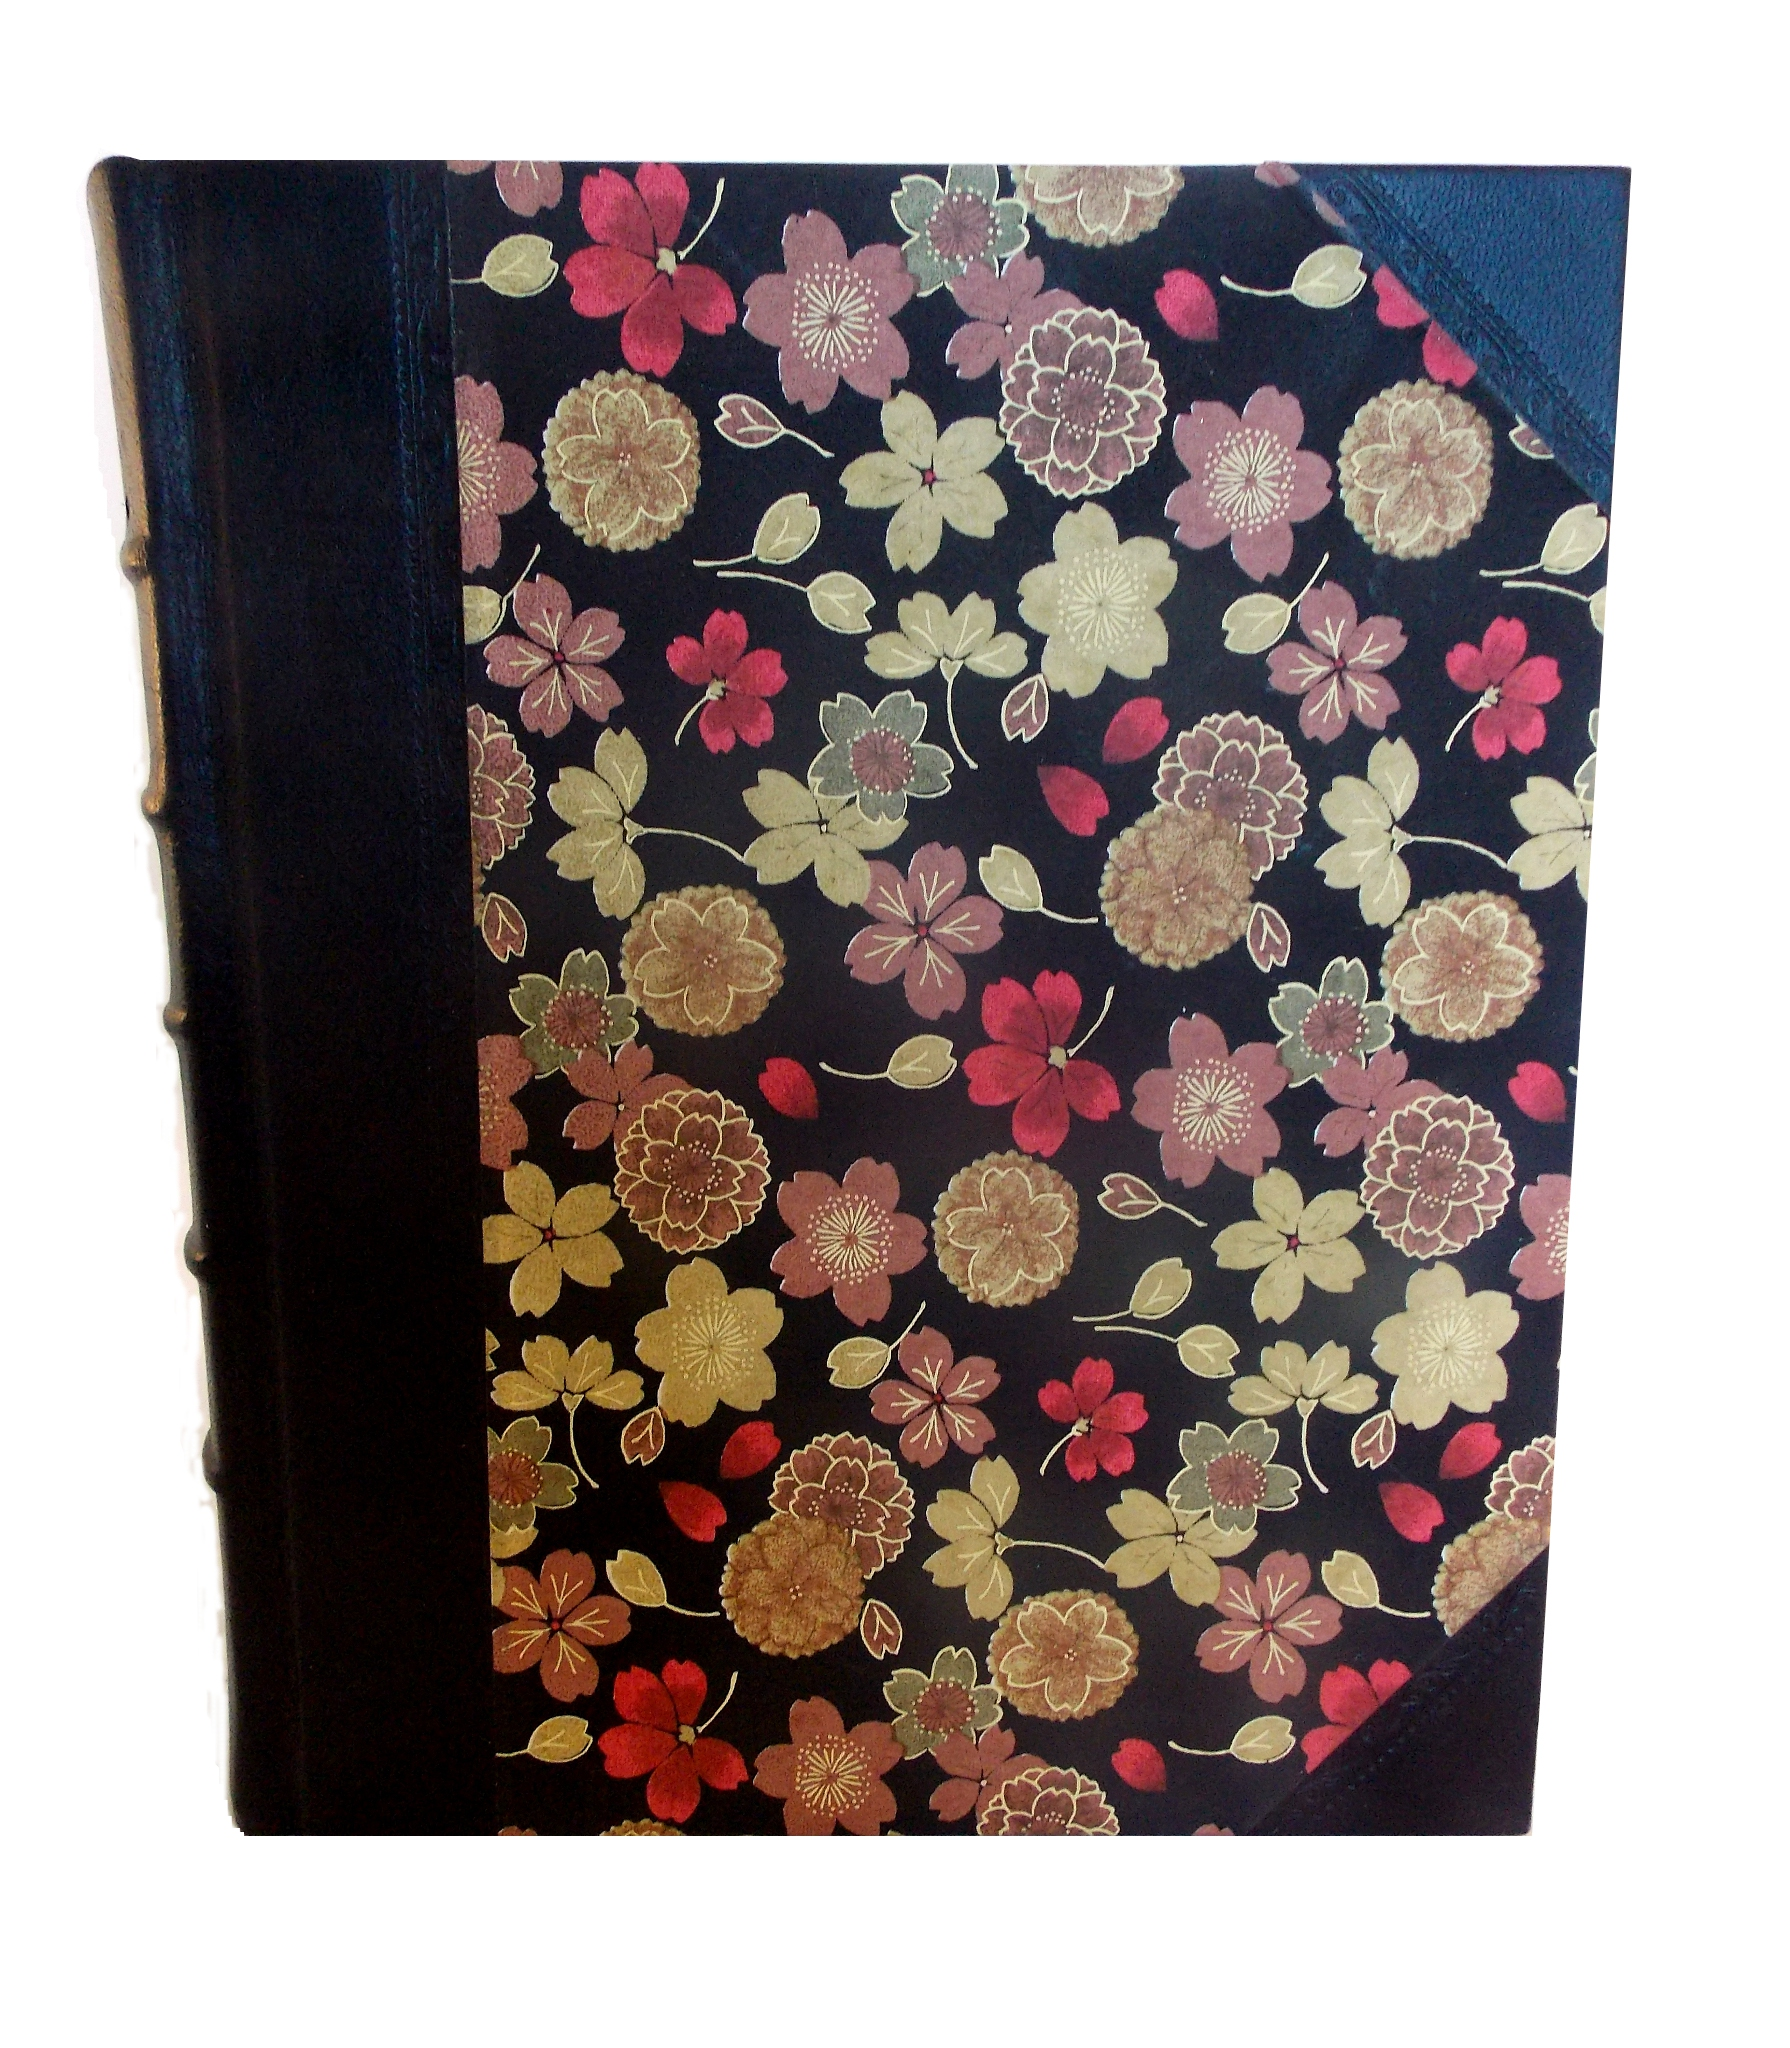 Half Leather Portrait Album in Golden Flower design